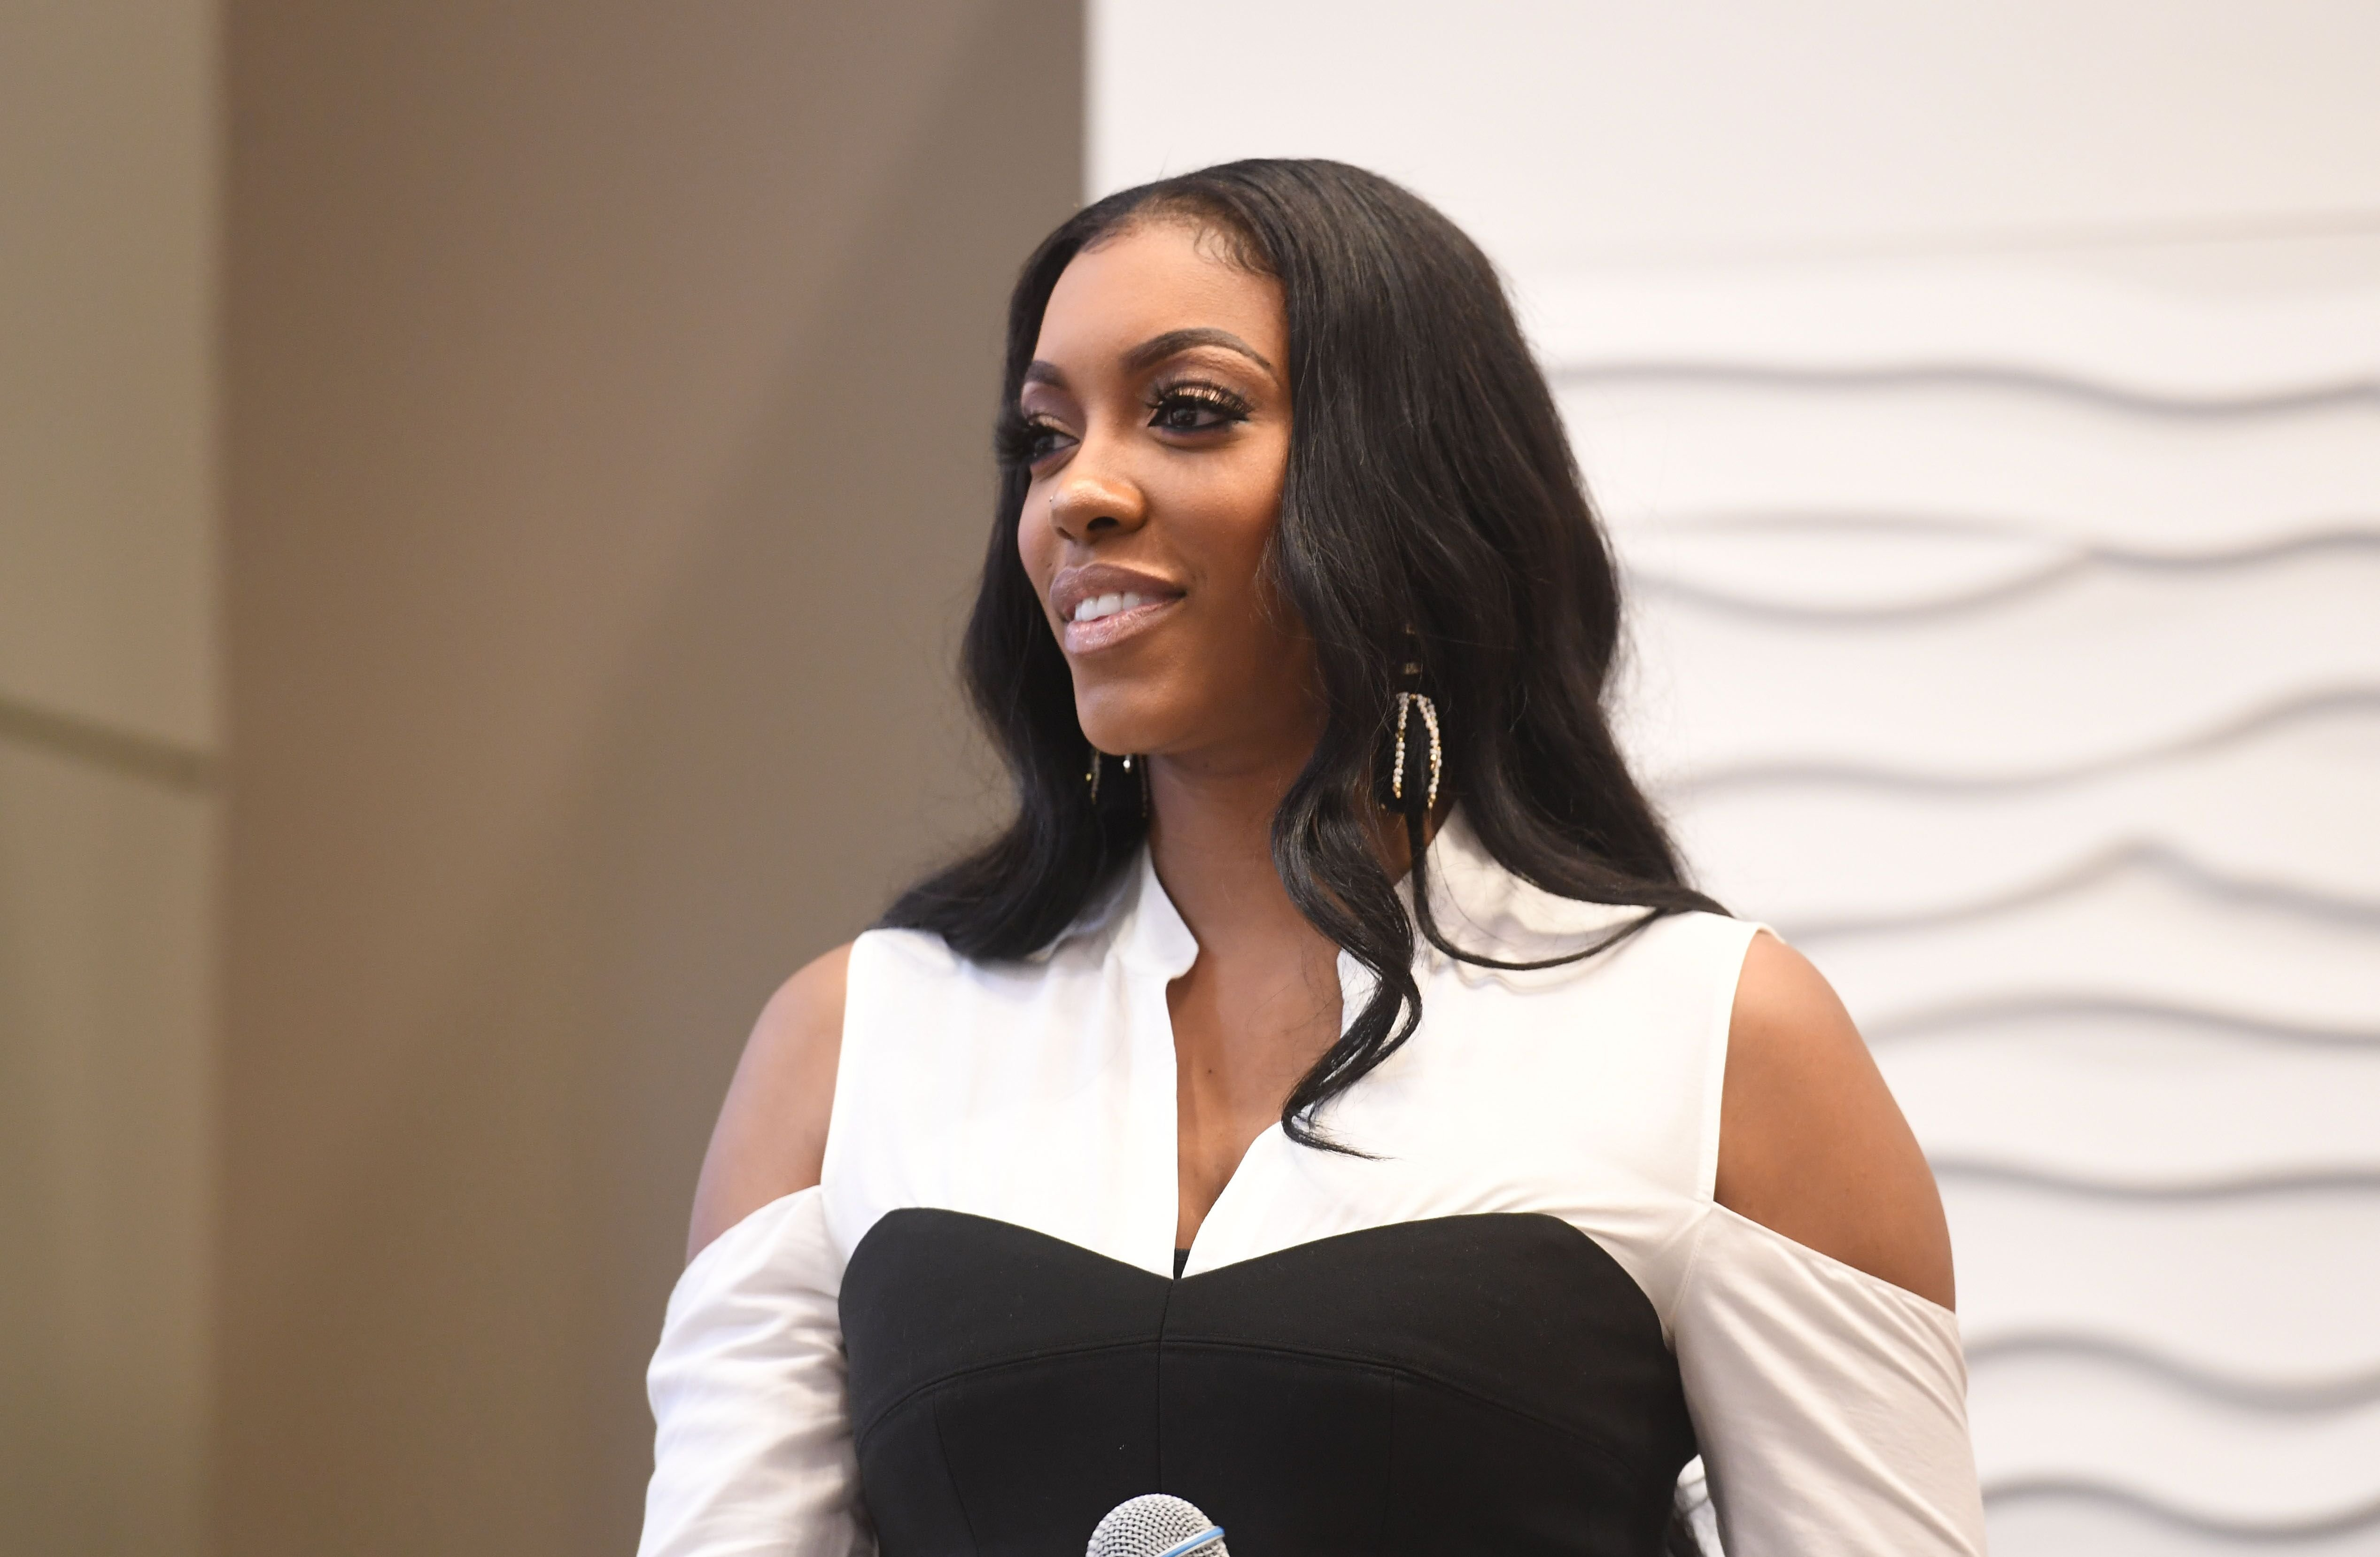 TV personality Porsha Williams speaks onstage at 2018 Hosea's Heroes Awards at Loudermilk Conference Center on February 25, 2018 | Photo: Getty Images